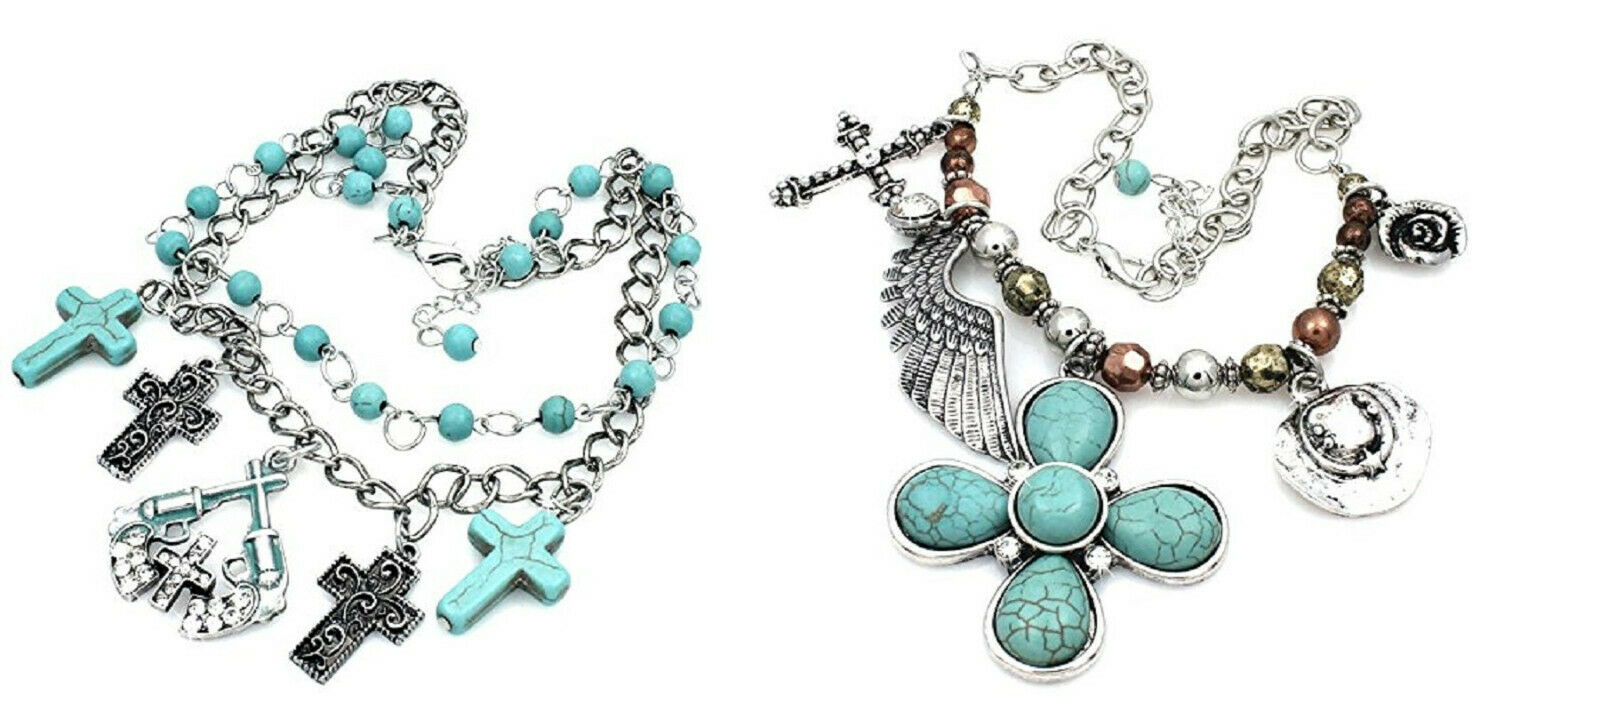 BHW Bling Cowgirl Boot Anklet Jewelry Turquoise Womens Western Charm Chain Strap